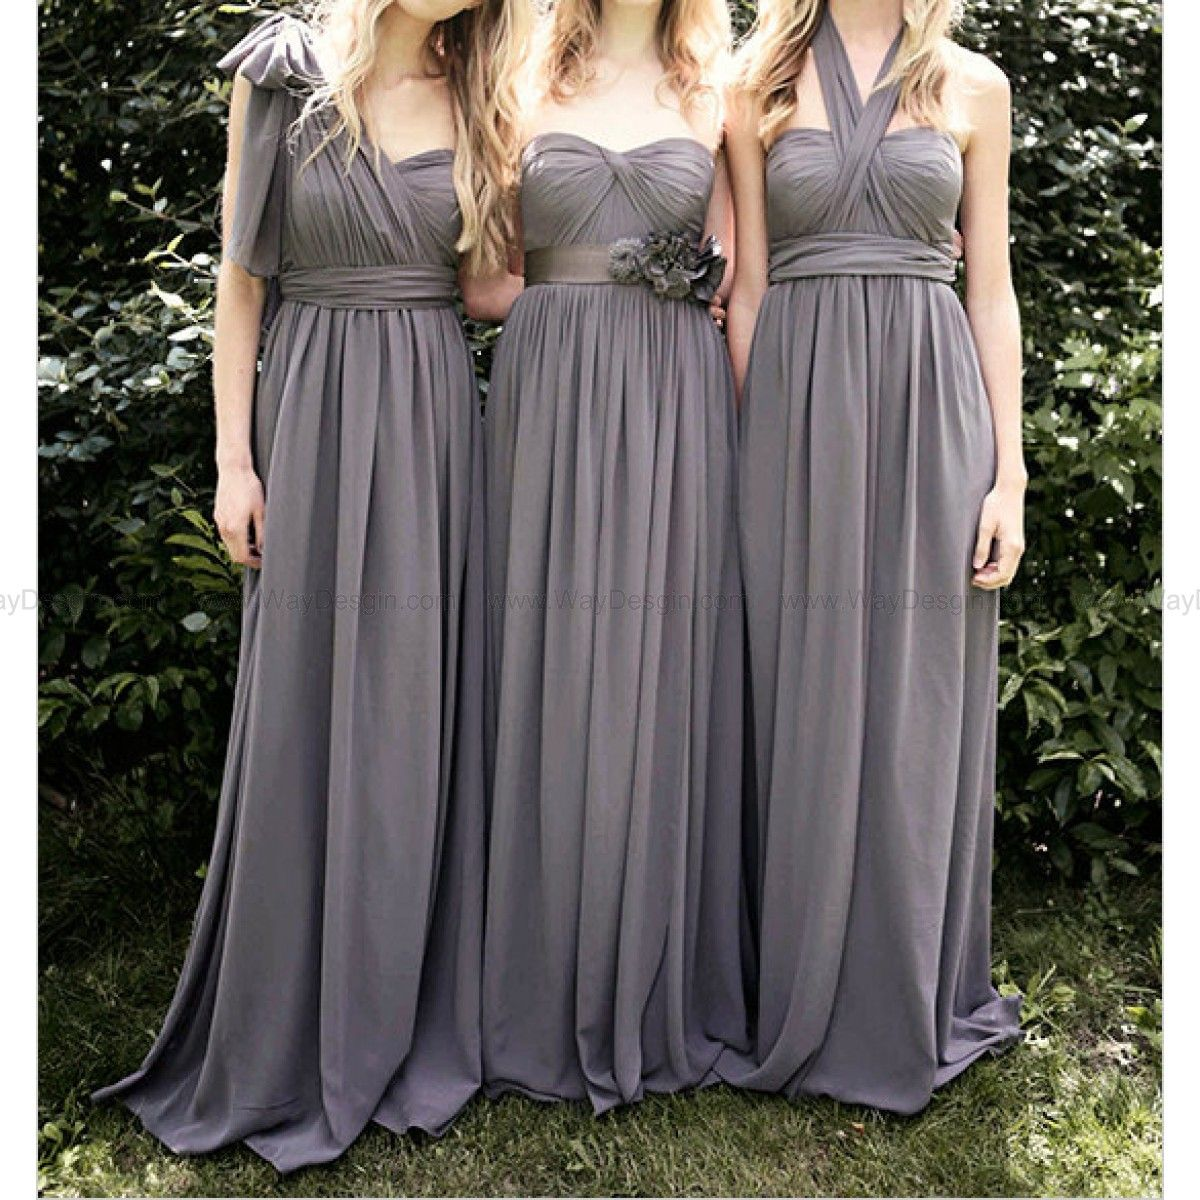 Bridesmaid dresses from china reviews gallery braidsmaid dress convertible bridesmaid dresses long chiffon bridesmaid dresses cheap dress pumpkin buy quality dresses occasion directly from ombrellifo Choice Image